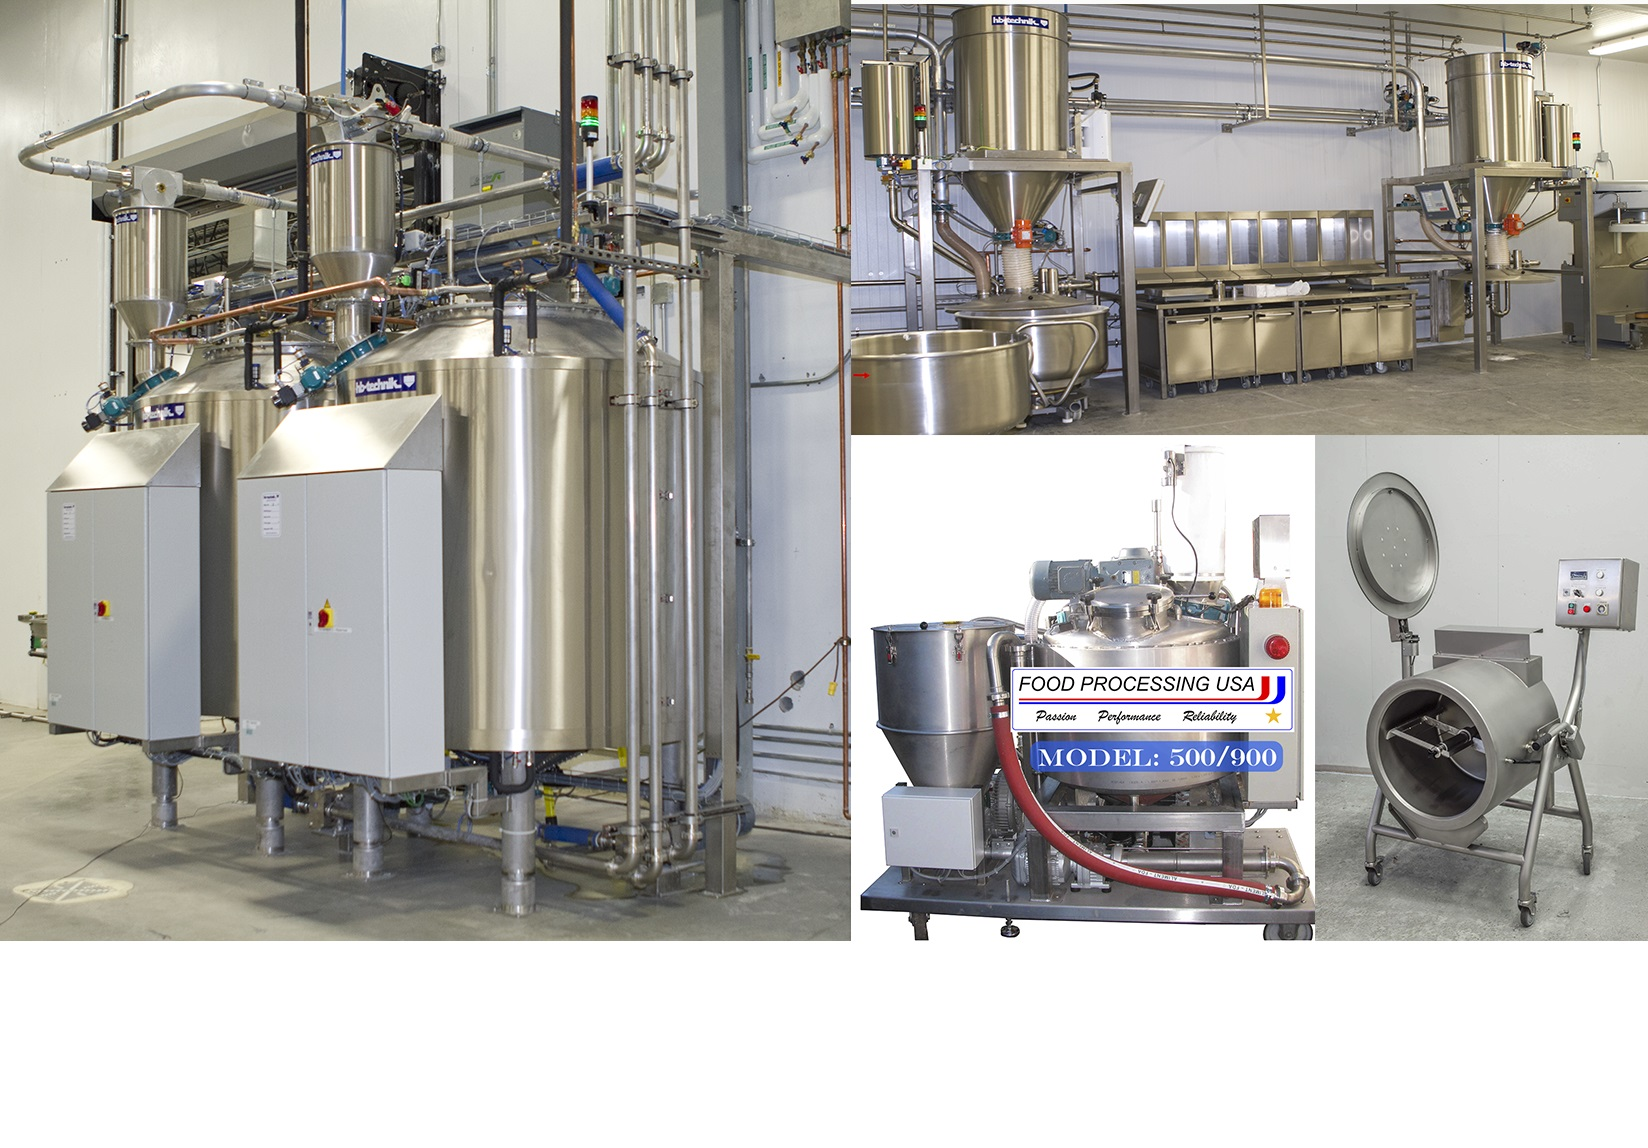 Food Processing Equipment Assets for sale in NJ